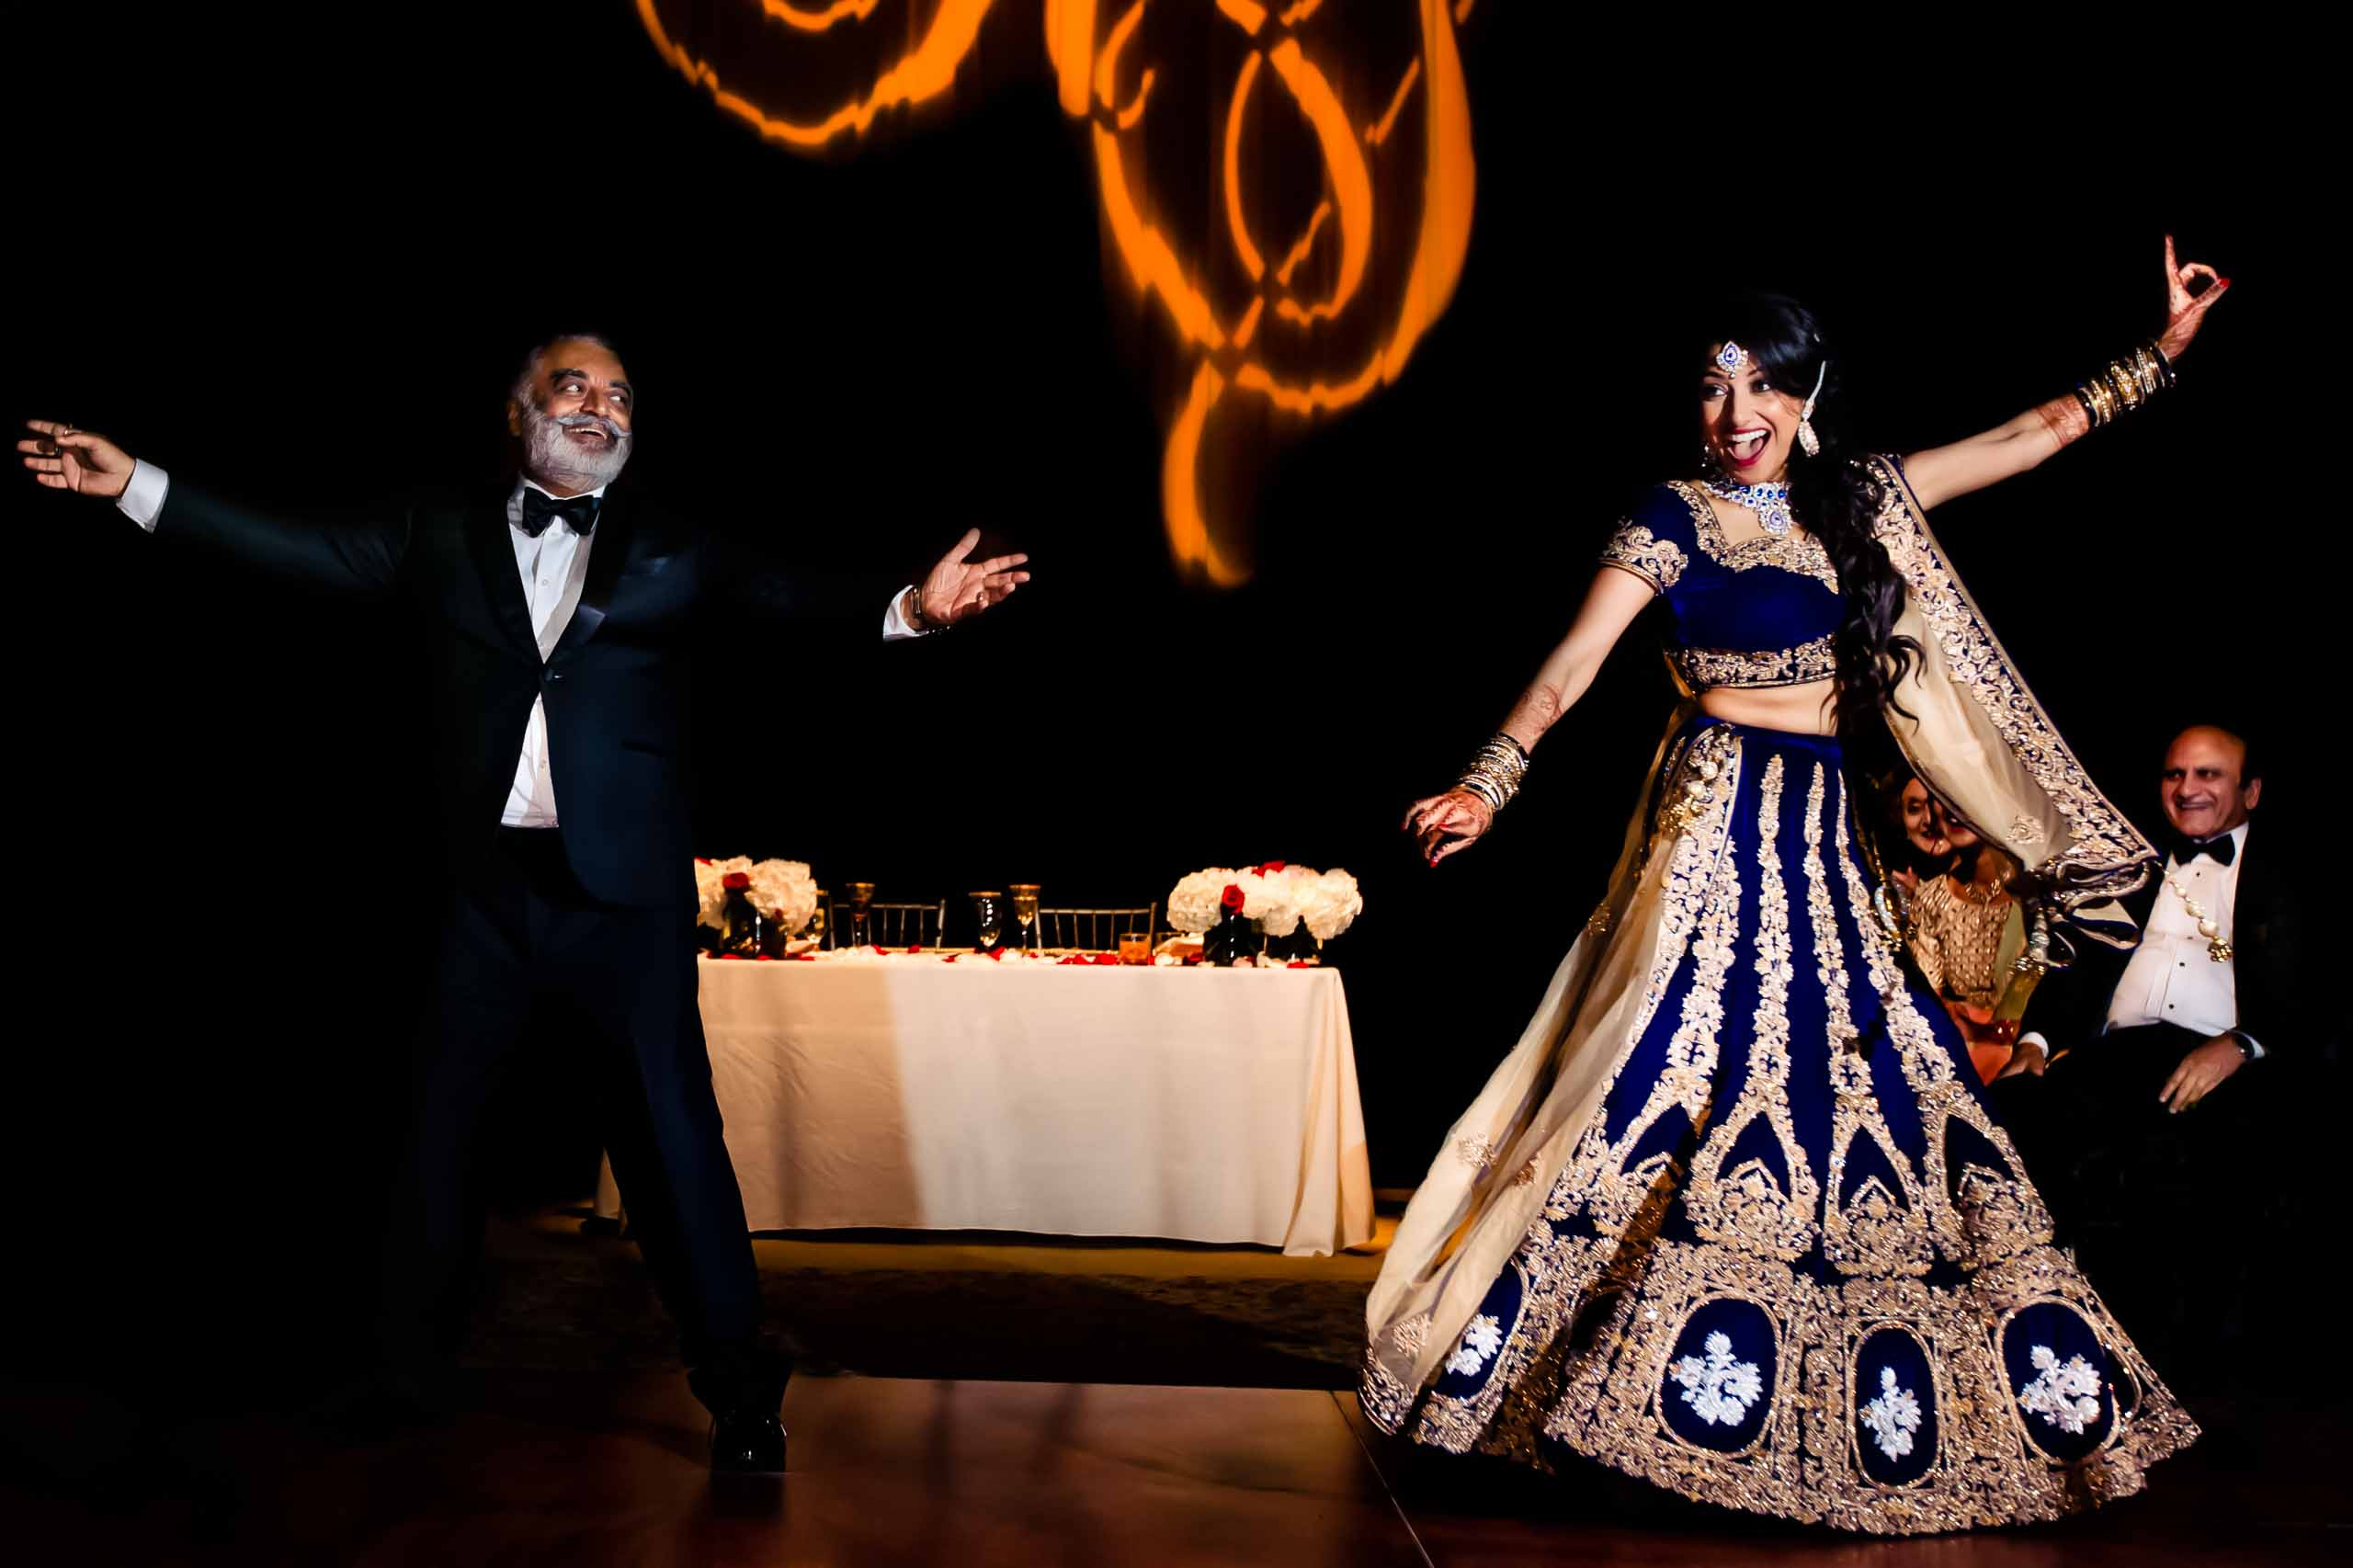 Exciting photo of an Indian bride and her father dancing during a Portland Art museum wedding.